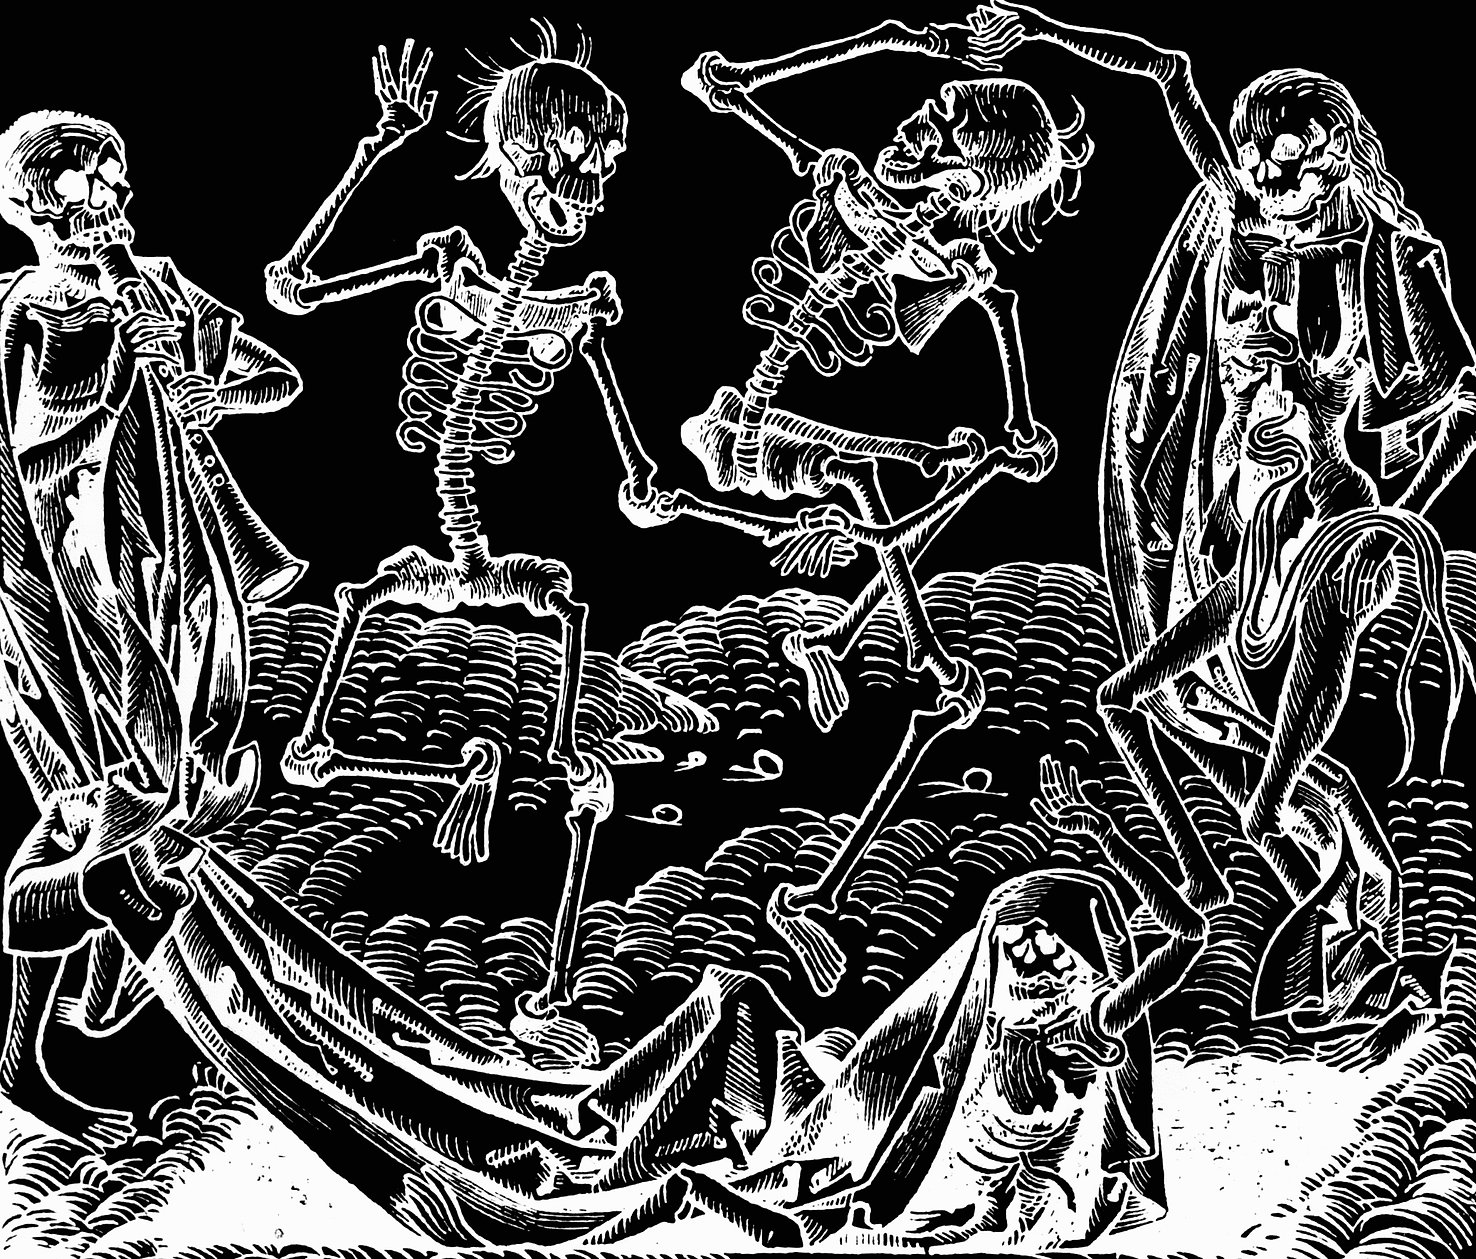 Nuremberg_1chronicles_-_Dance_of_Death_(